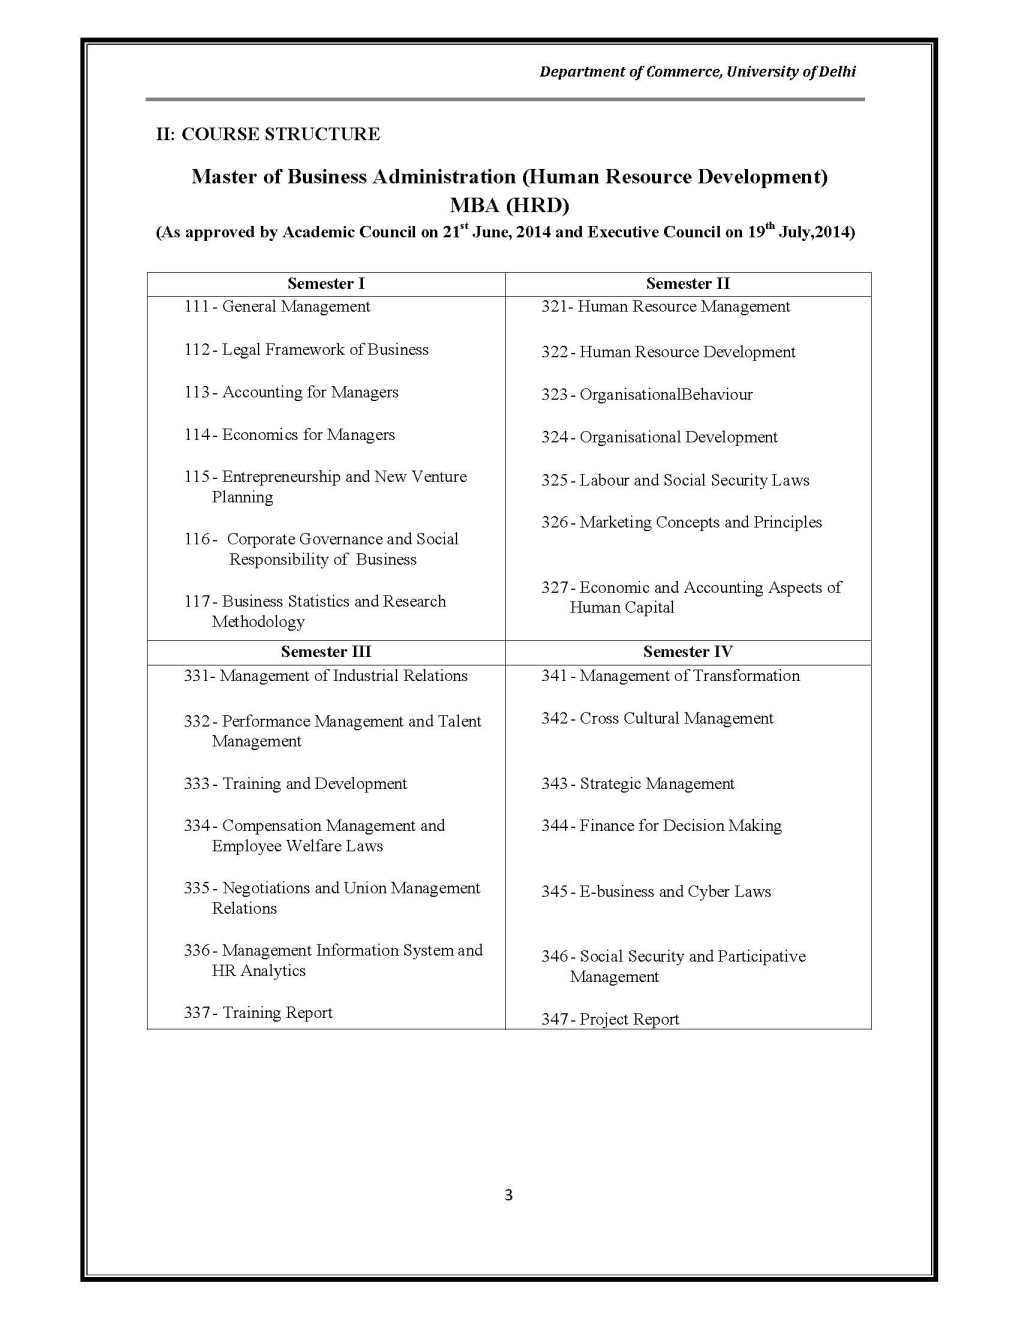 Research methodology question paper mba - Order Custom Essay